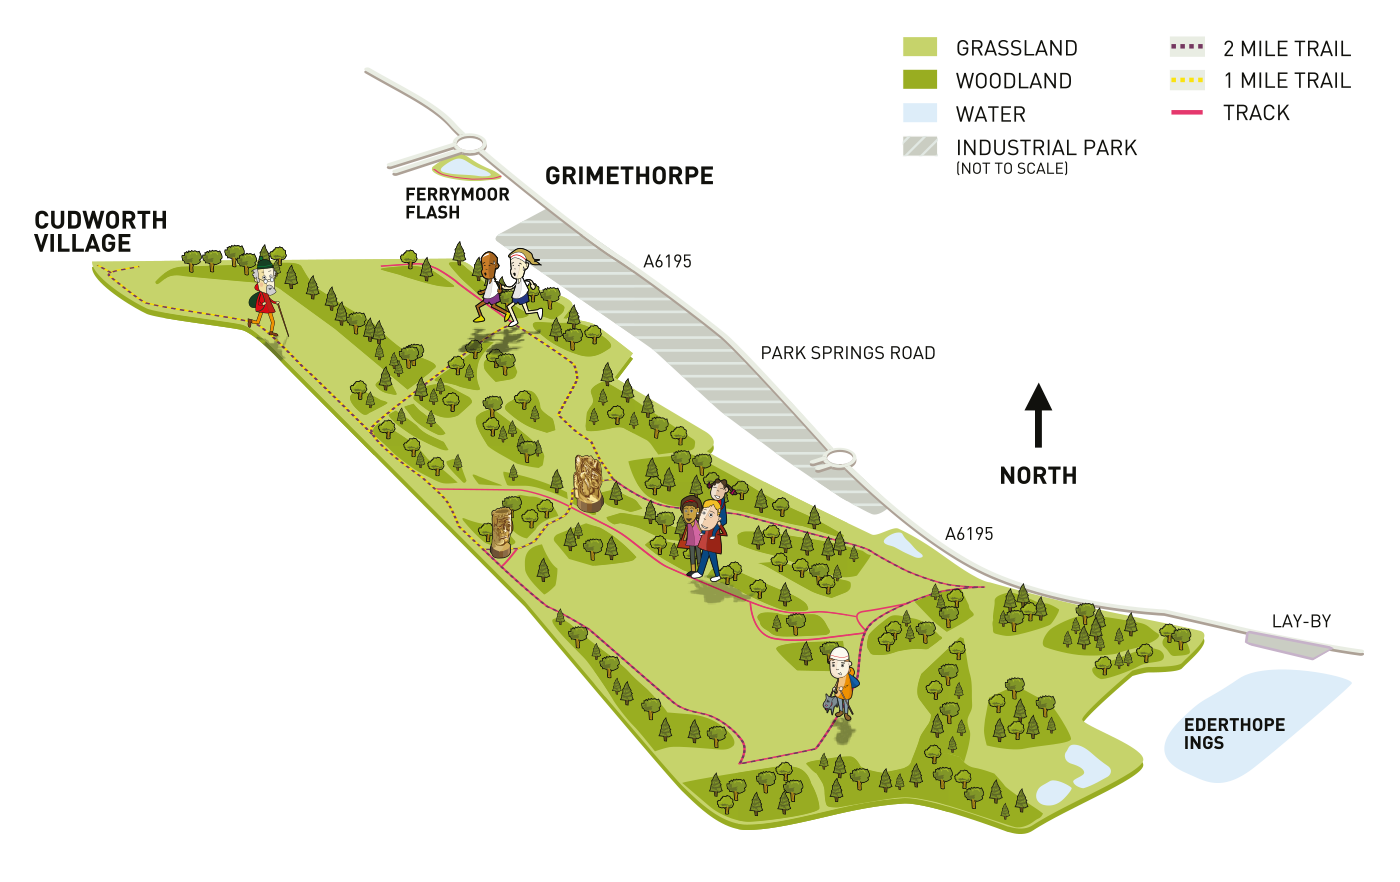 A site map graphic of The Land Trust's Cudworth Common site in Yorkshire